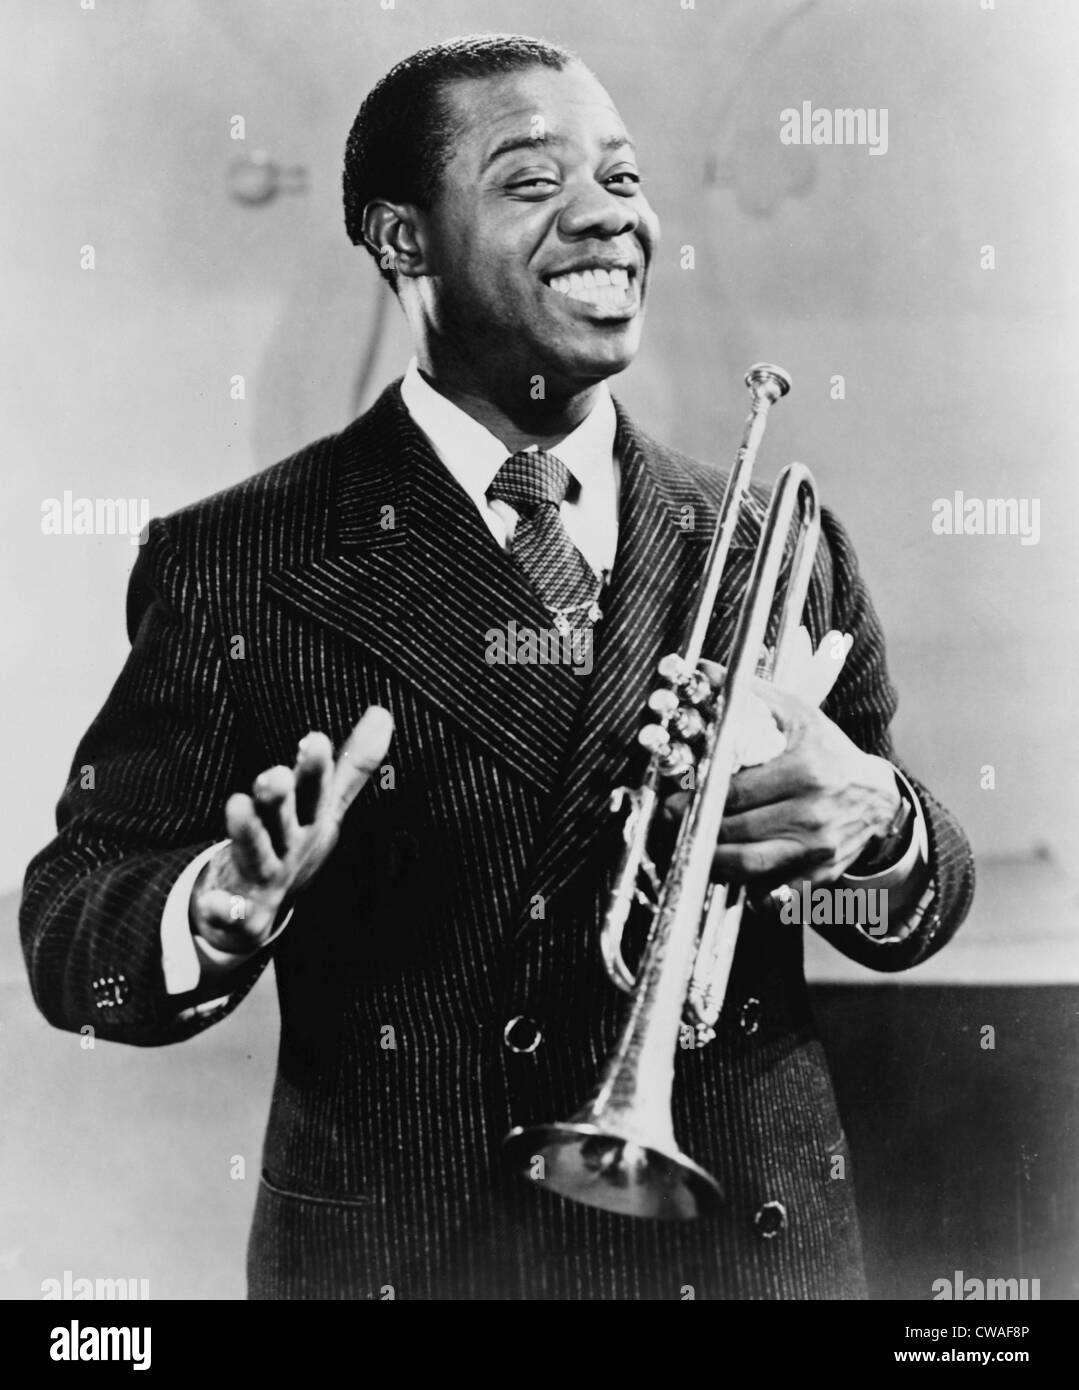 Louis Armstrong (1901-1971), African American Jazz musician, holding his trumpet, 1948. Stock Photo